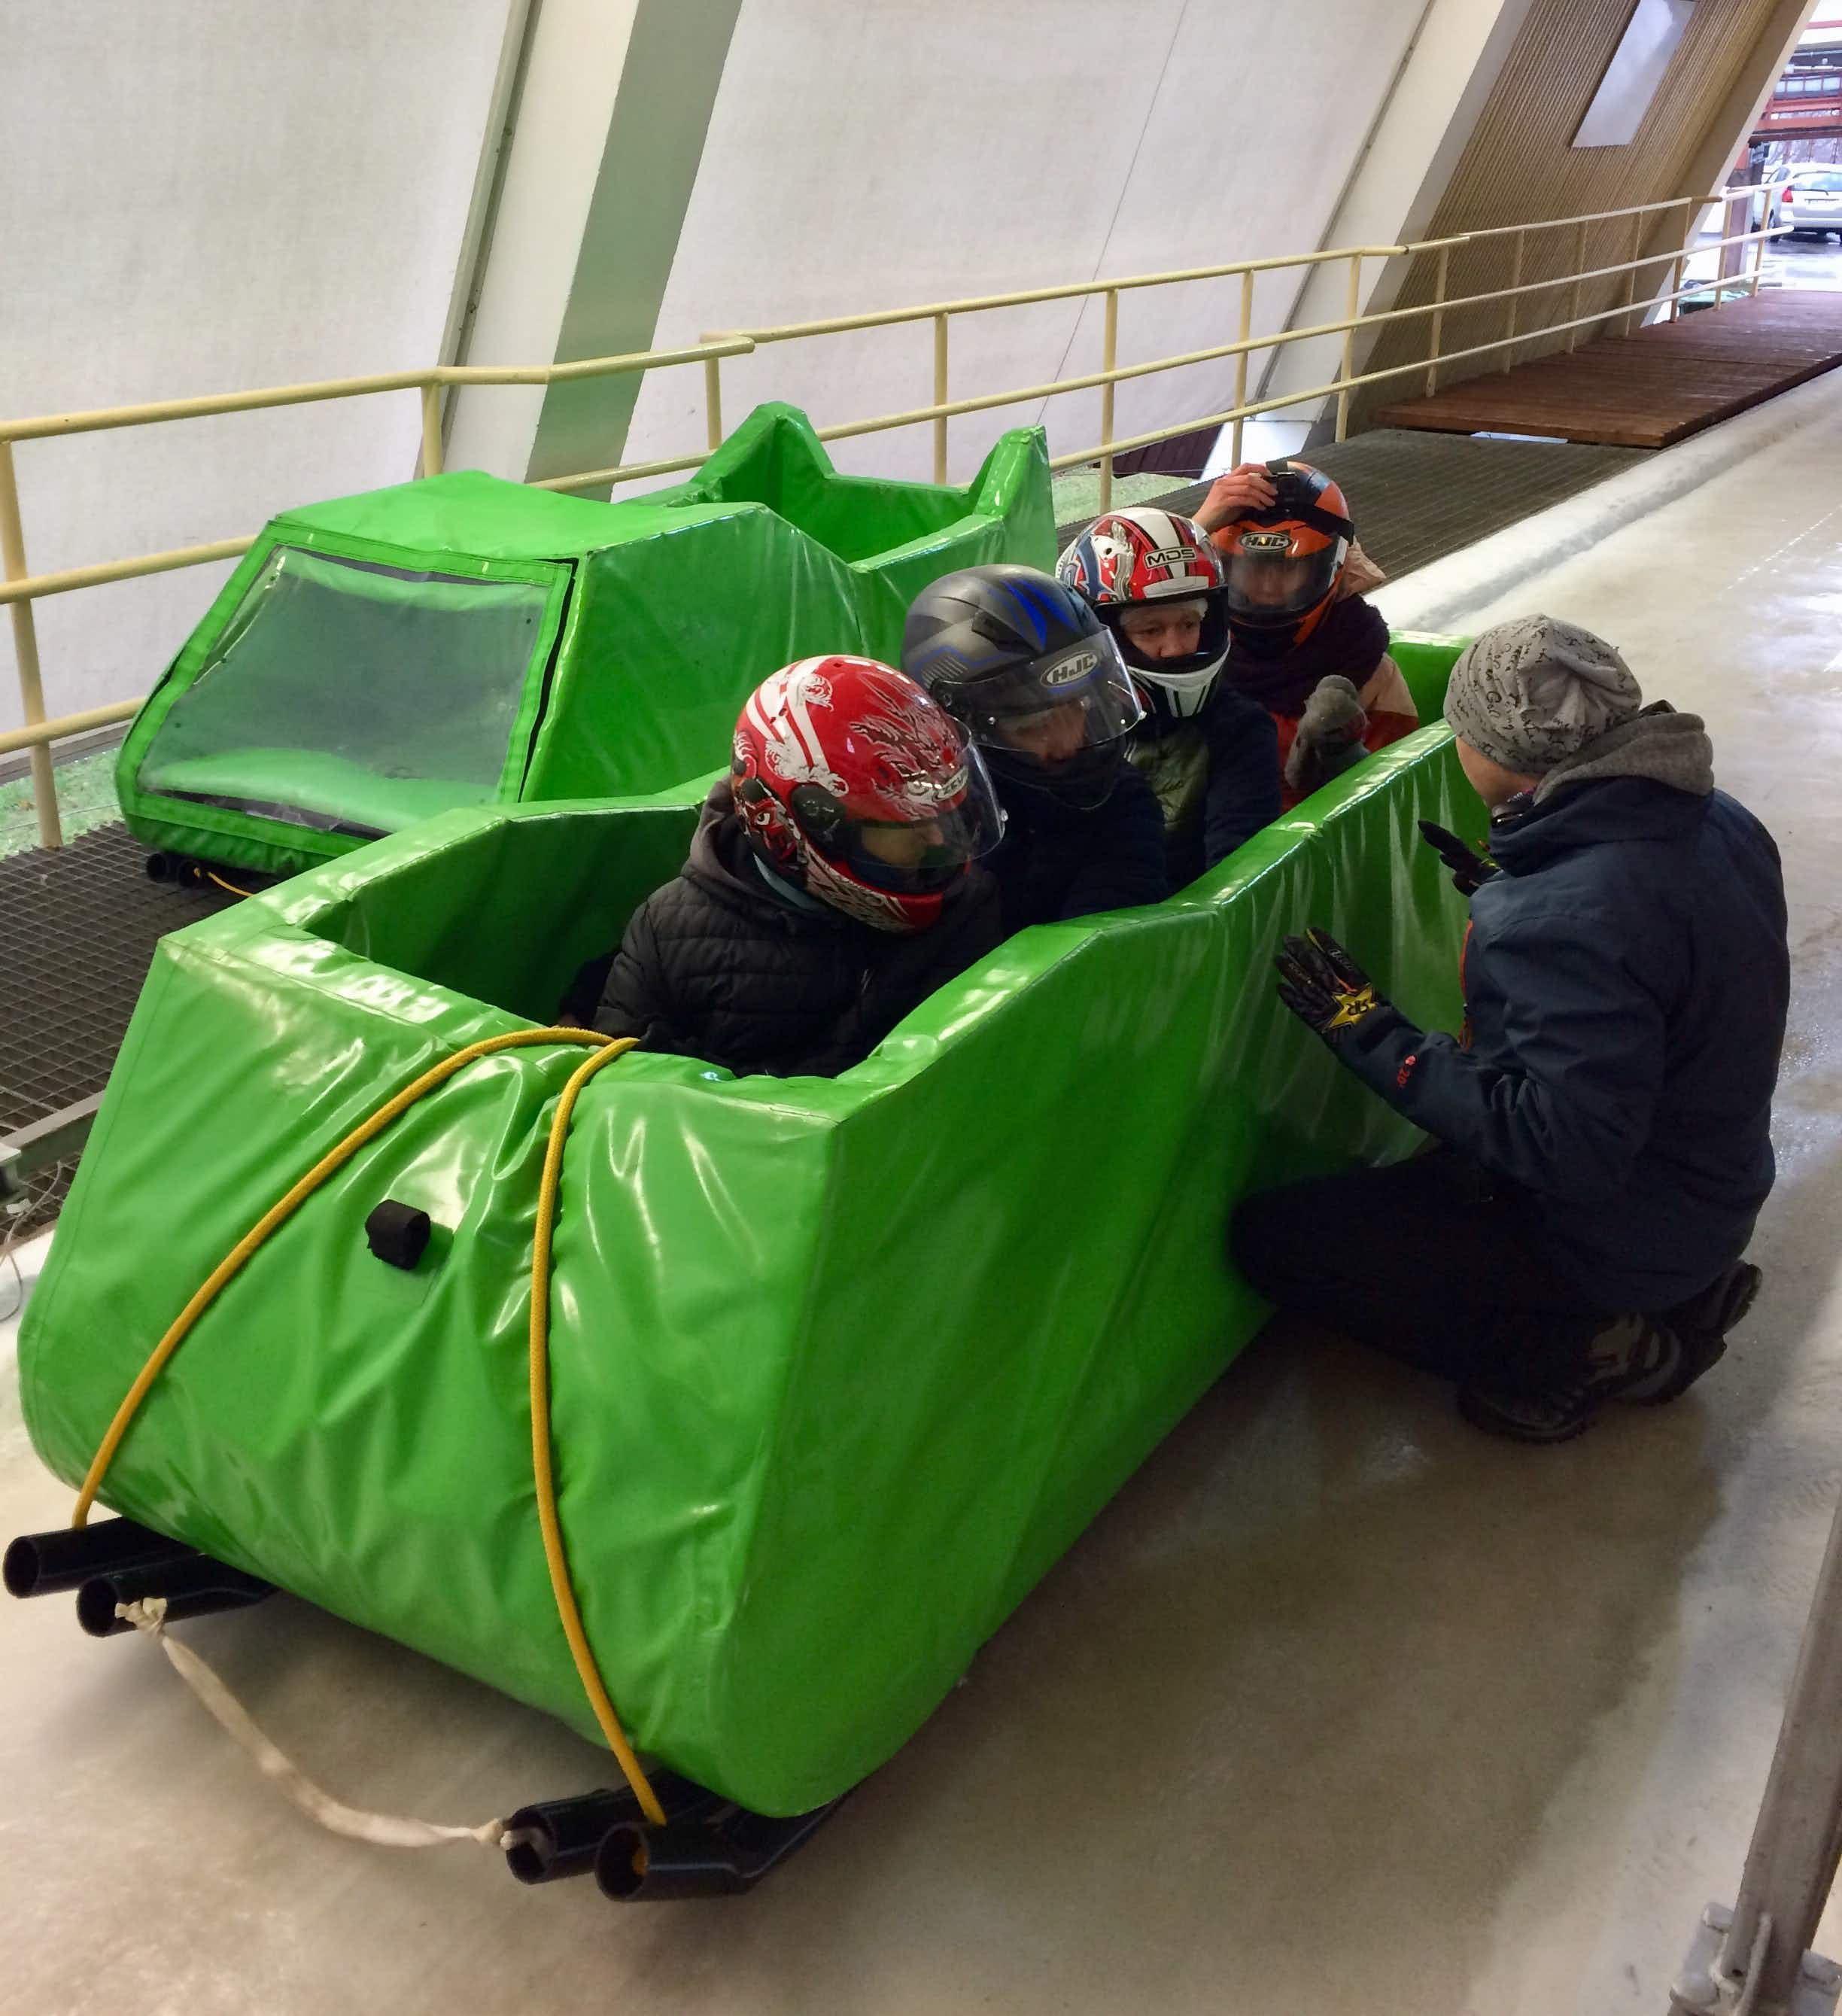 The 'soft bob' at Sigulda is the alternative for those not wanting the full 4G bobsleigh experience © Clifton Wilkinson / Lonely Planet